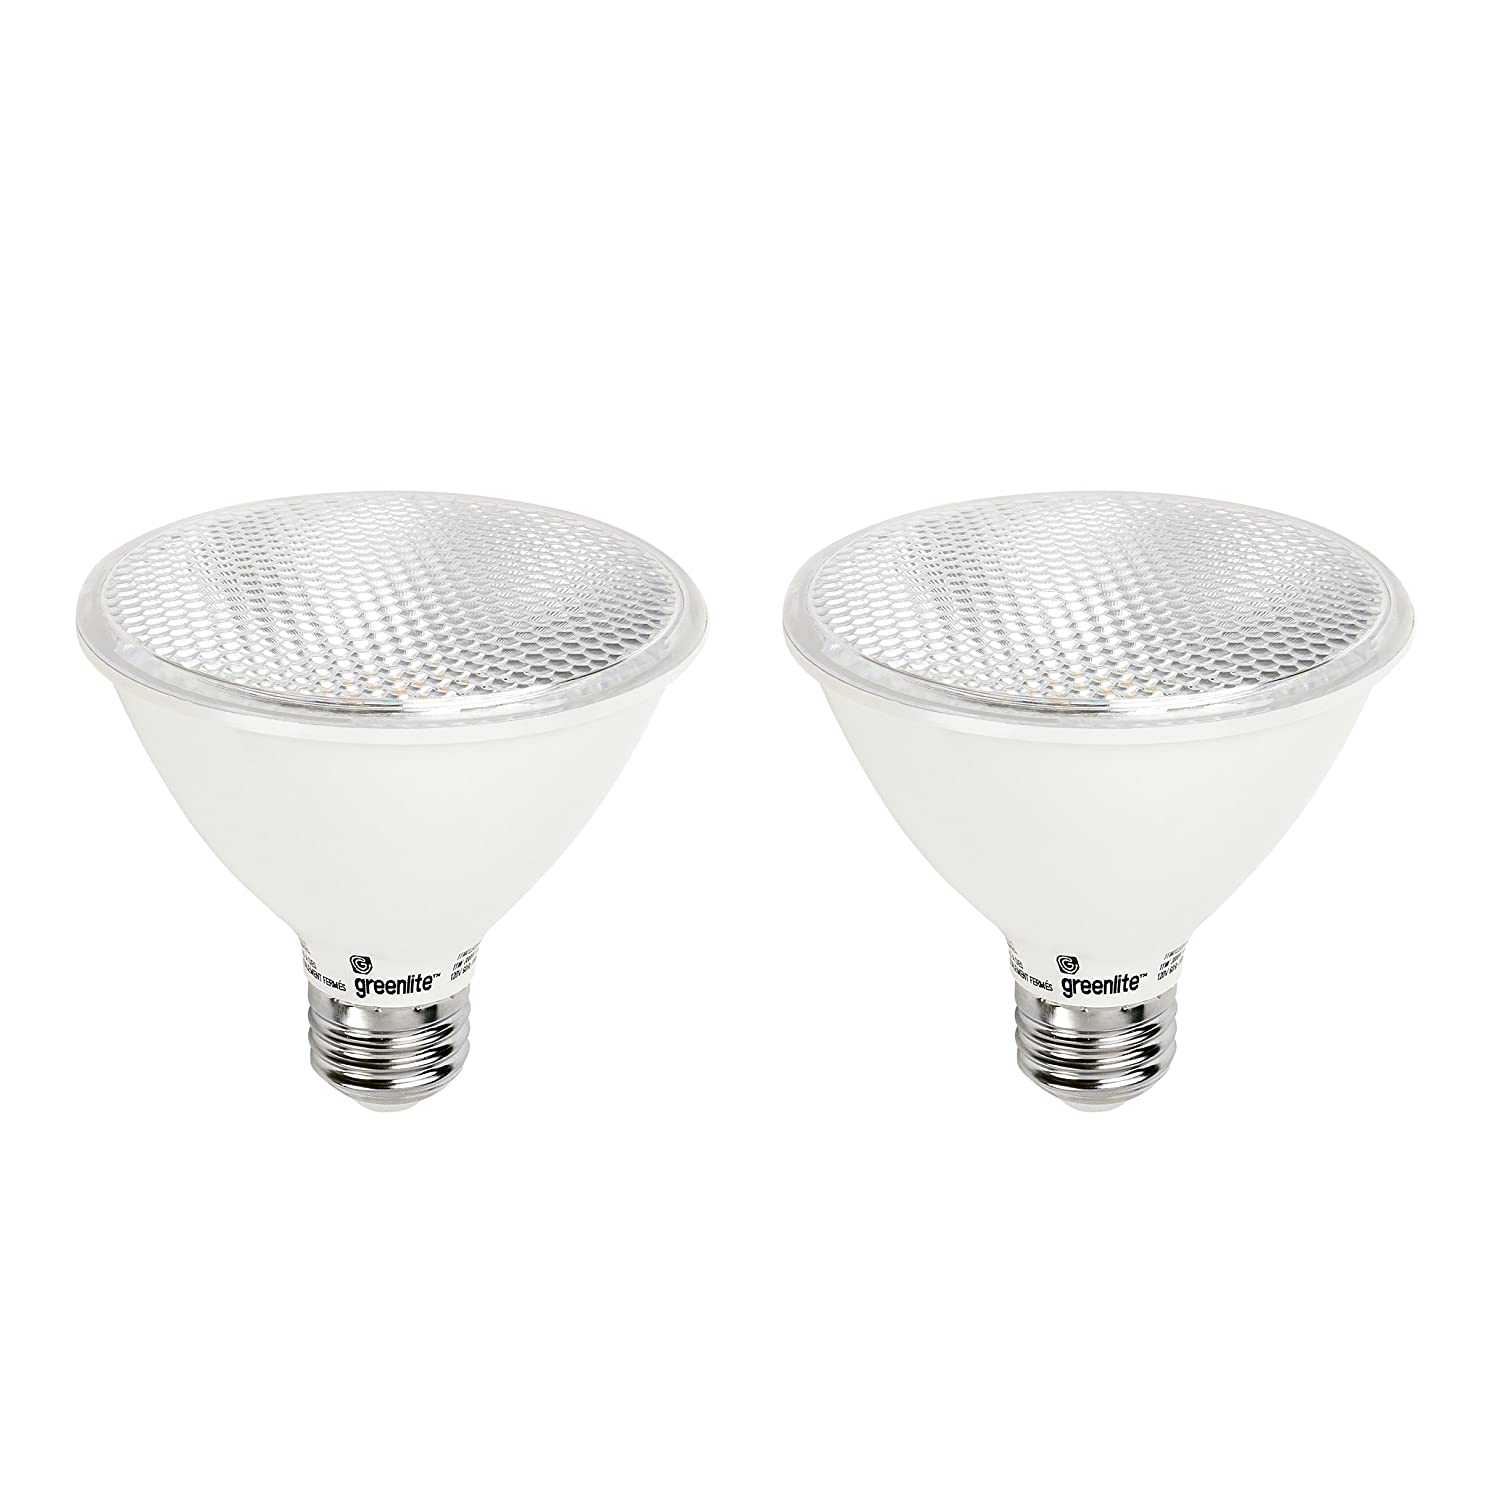 LED PAR30 Short Neck Dimmable Flood Light Bulb, 11W (75W Equivalent), 900 Lumens, 3000k Bright White, 120V, Indoor/Outdoor, Energy Star Certified, UL Listed (2 Pack)